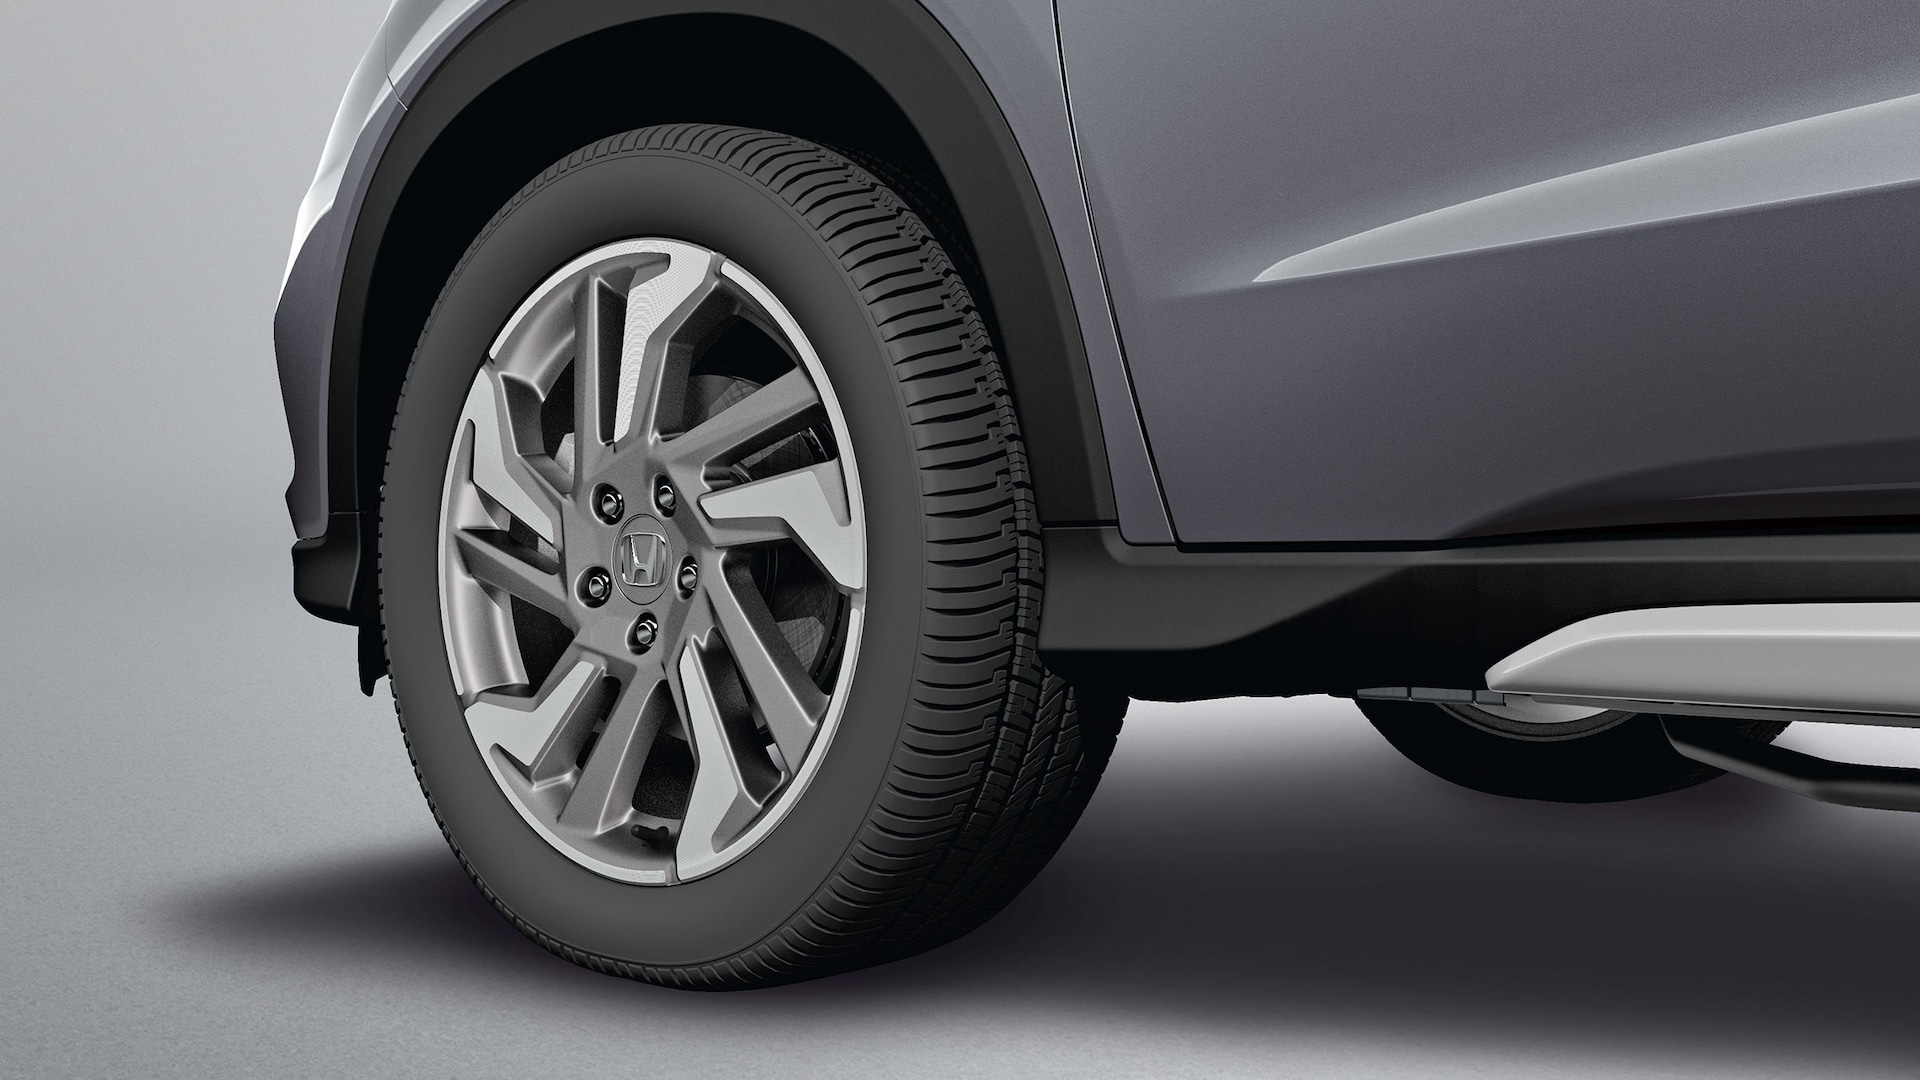 Accessory 18-inch alloy wheel detail on the 2020 Honda HR-V EX-L.